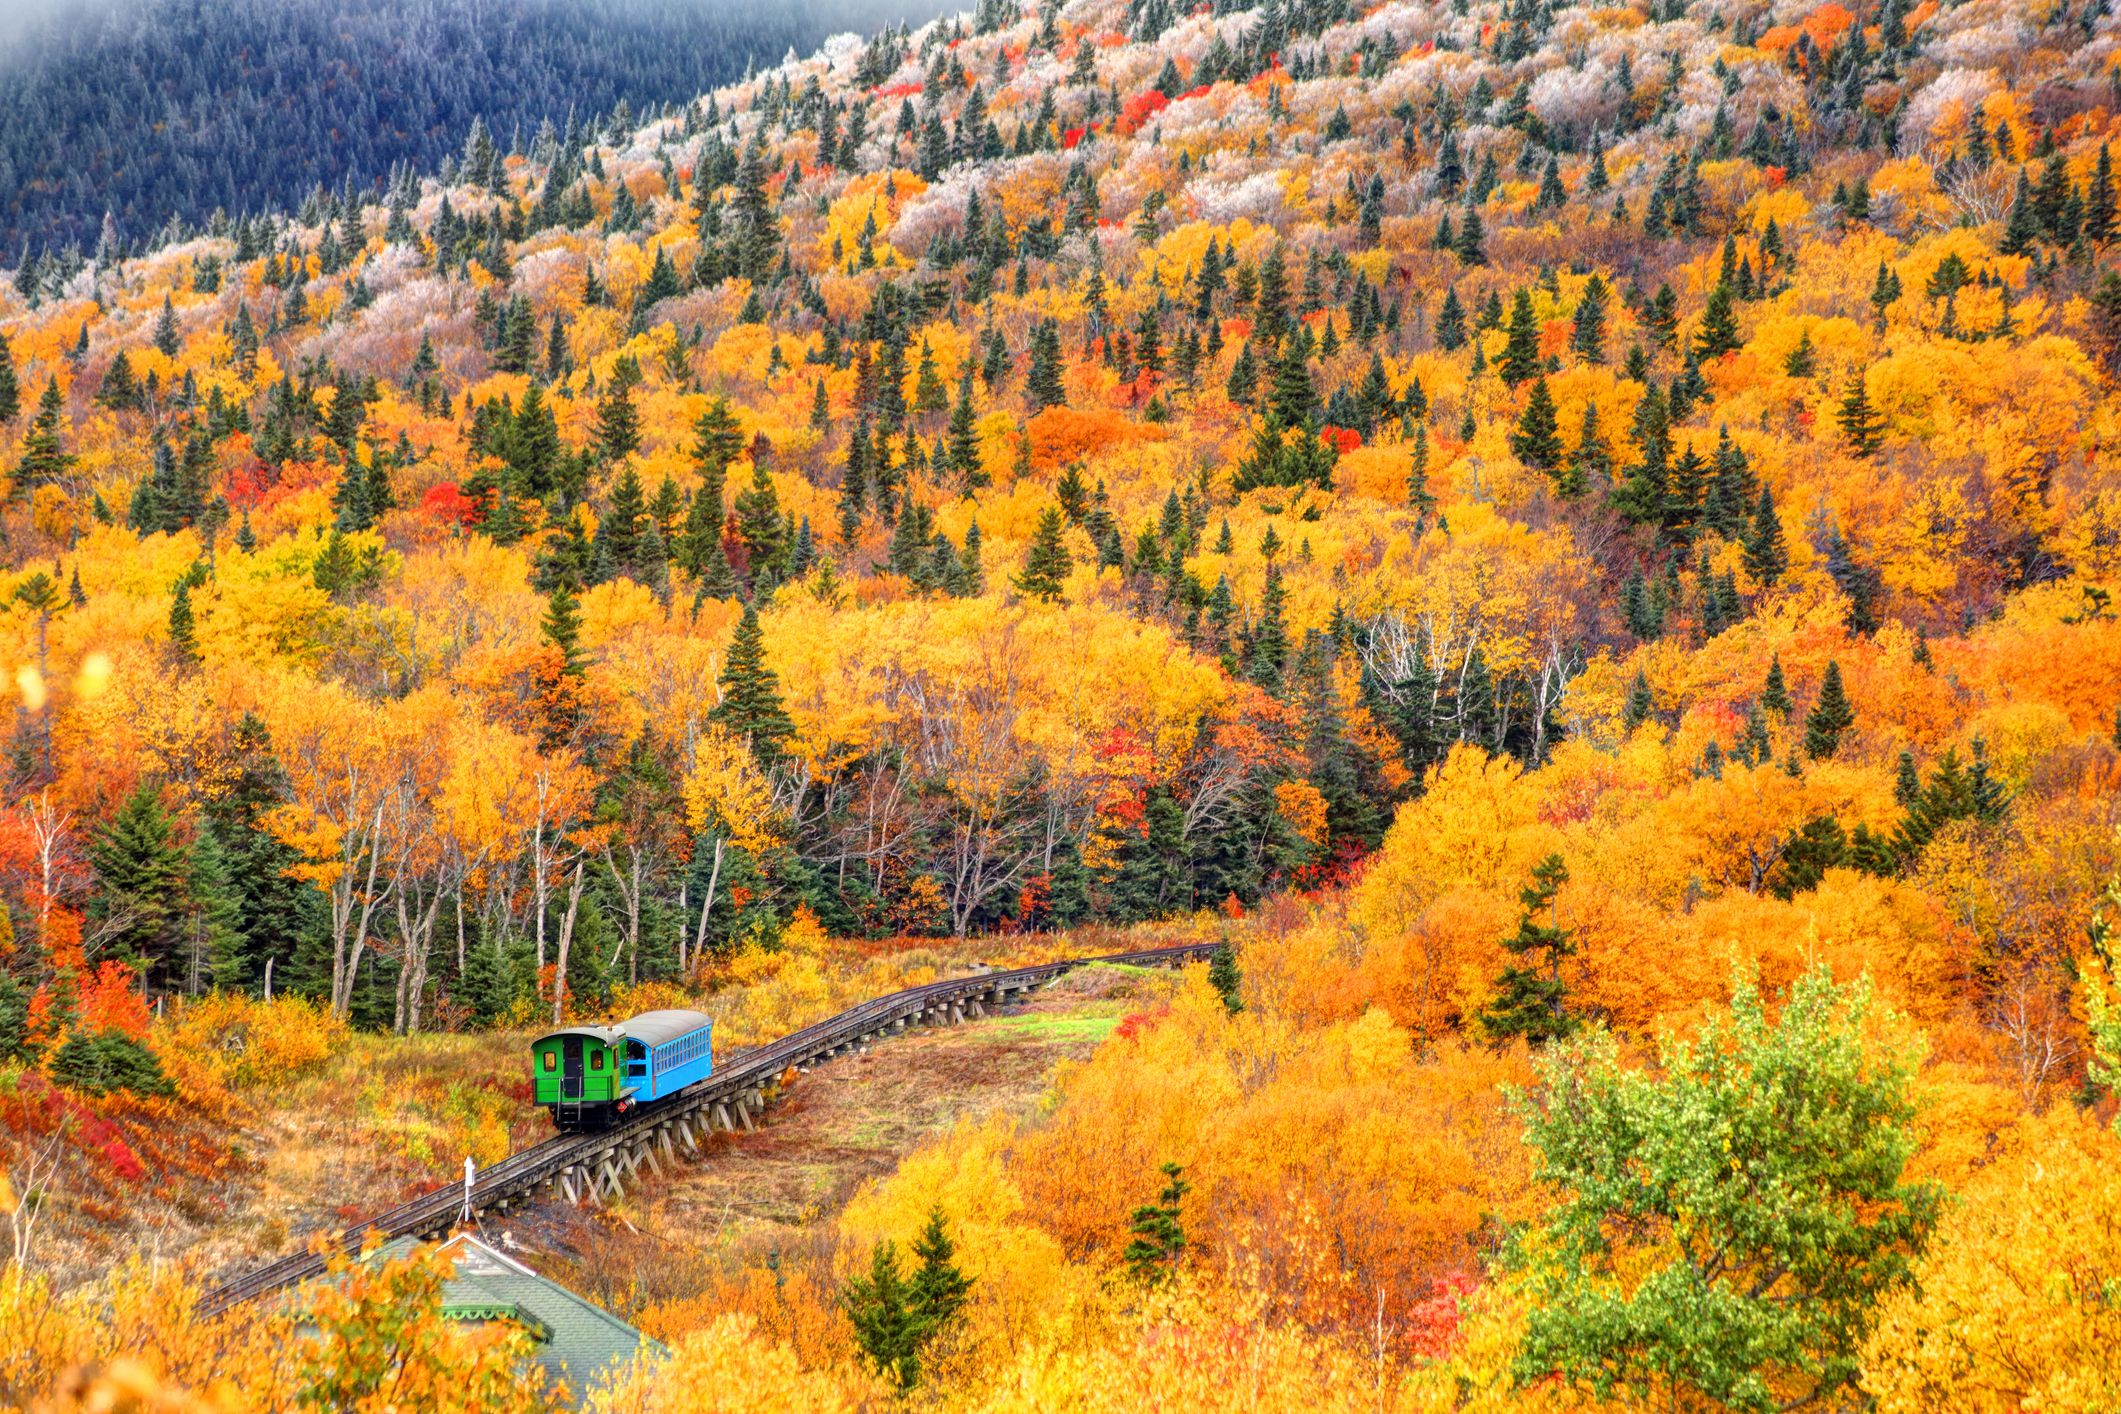 10 Fall Foliage Train Rides You Need to Add to Your Seasonal Bucket List ASAP